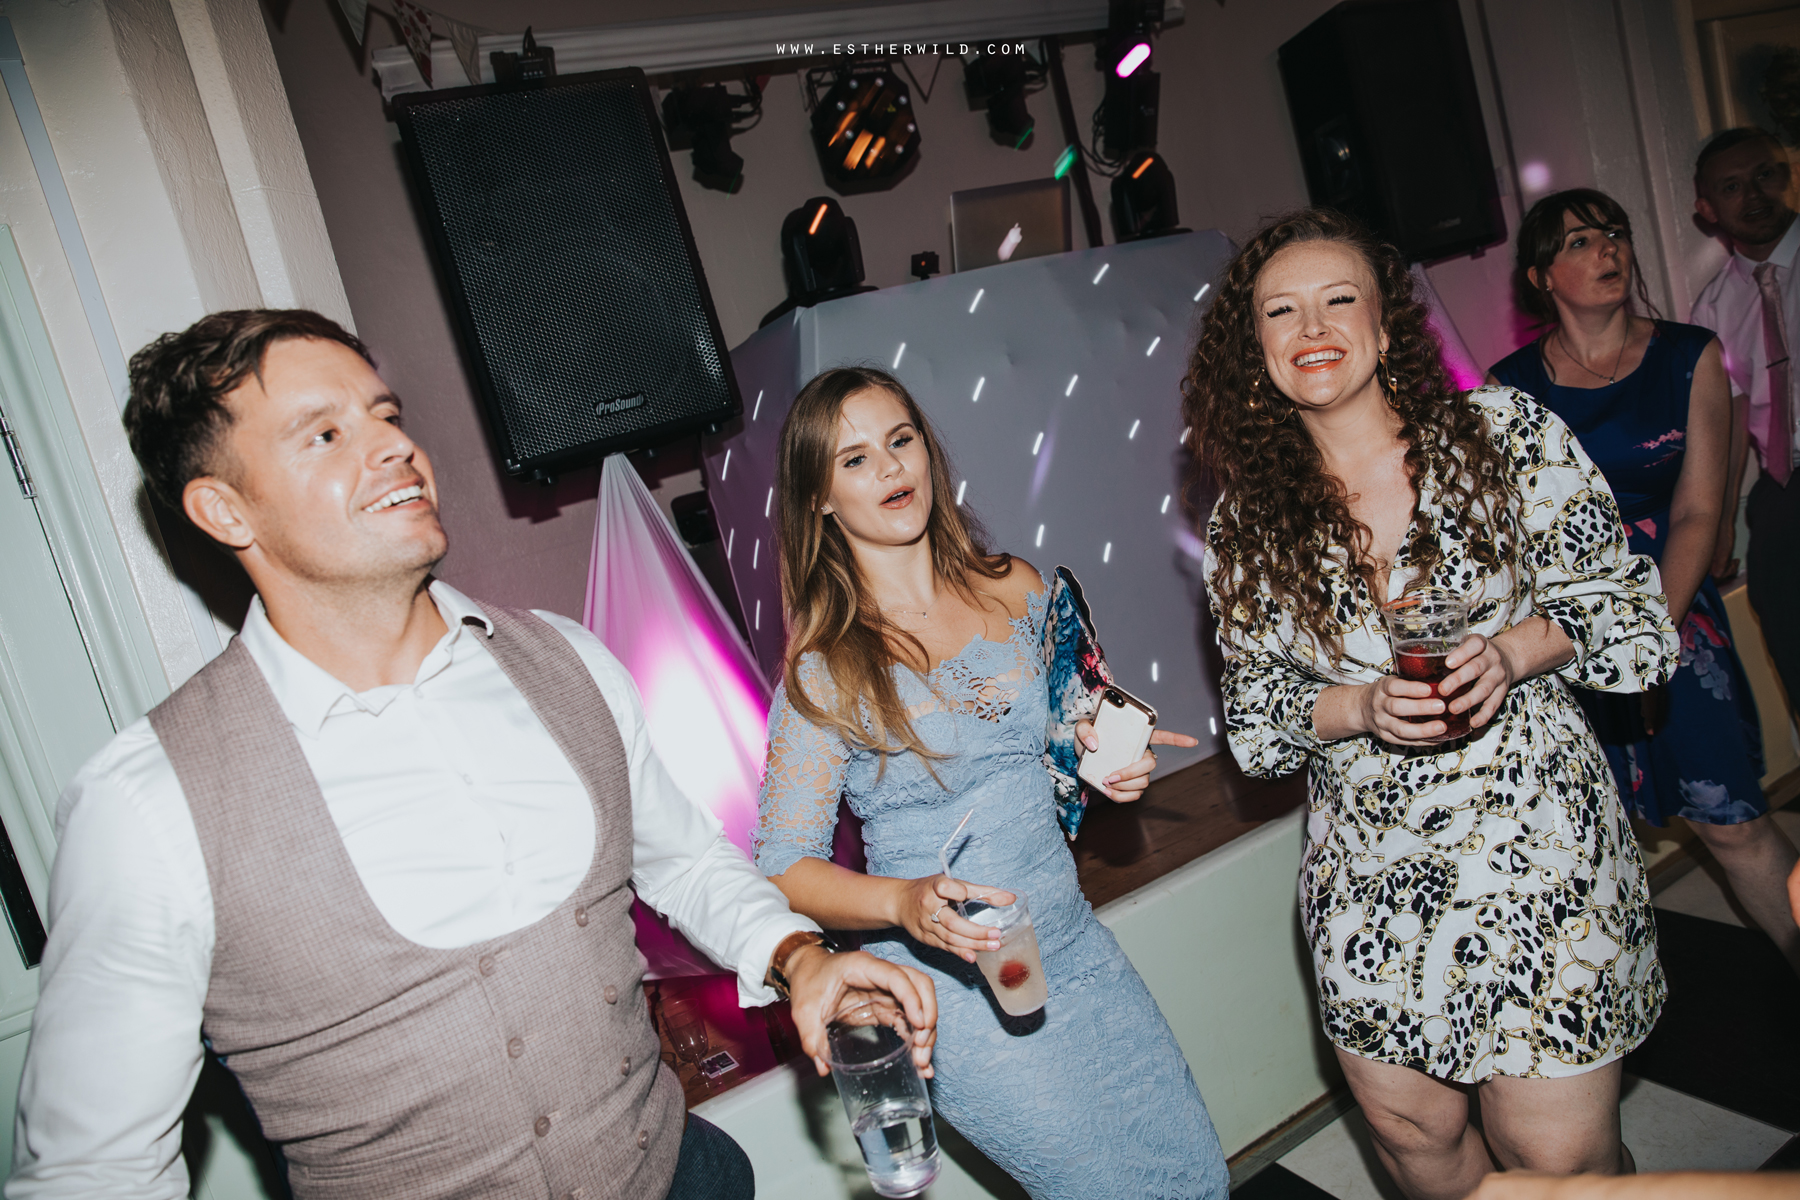 Swaffham_Wedding_Castle_Acre_Norfolk_Esther_Wild_Photographer_Wedding_Photography_3R8A2589.jpg